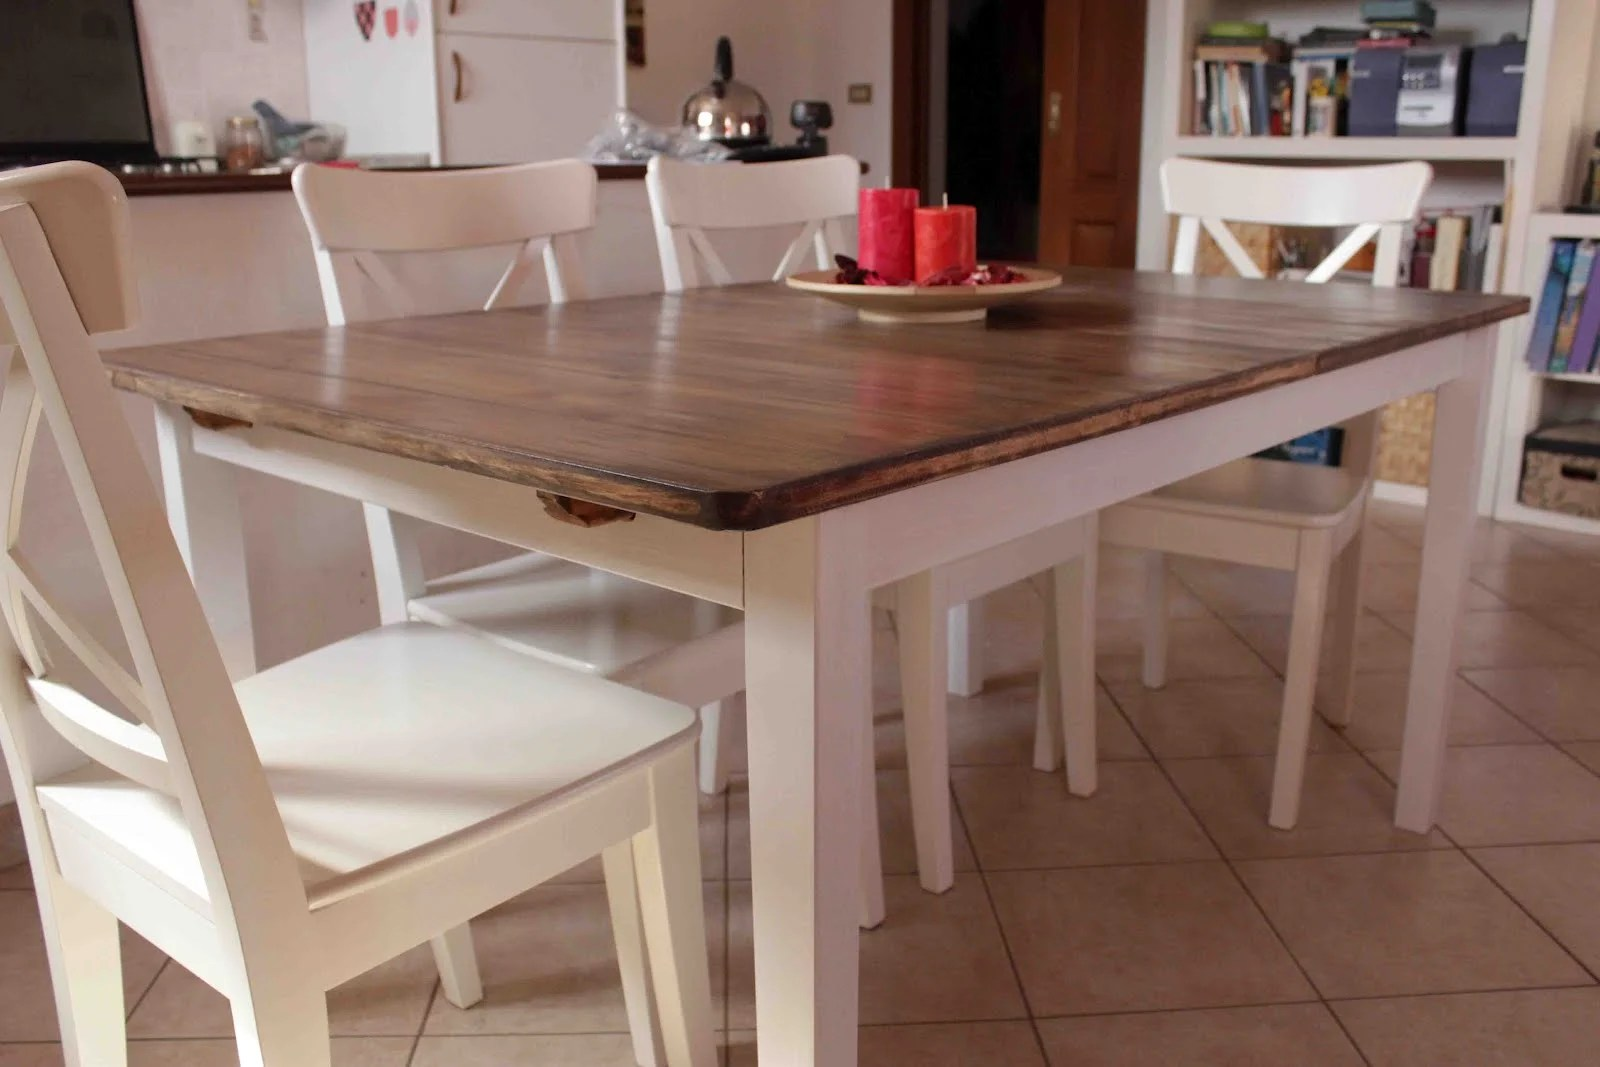 Ikea Dining Table Hack A Country Kitchen Style Dining Table Ikea Hackers